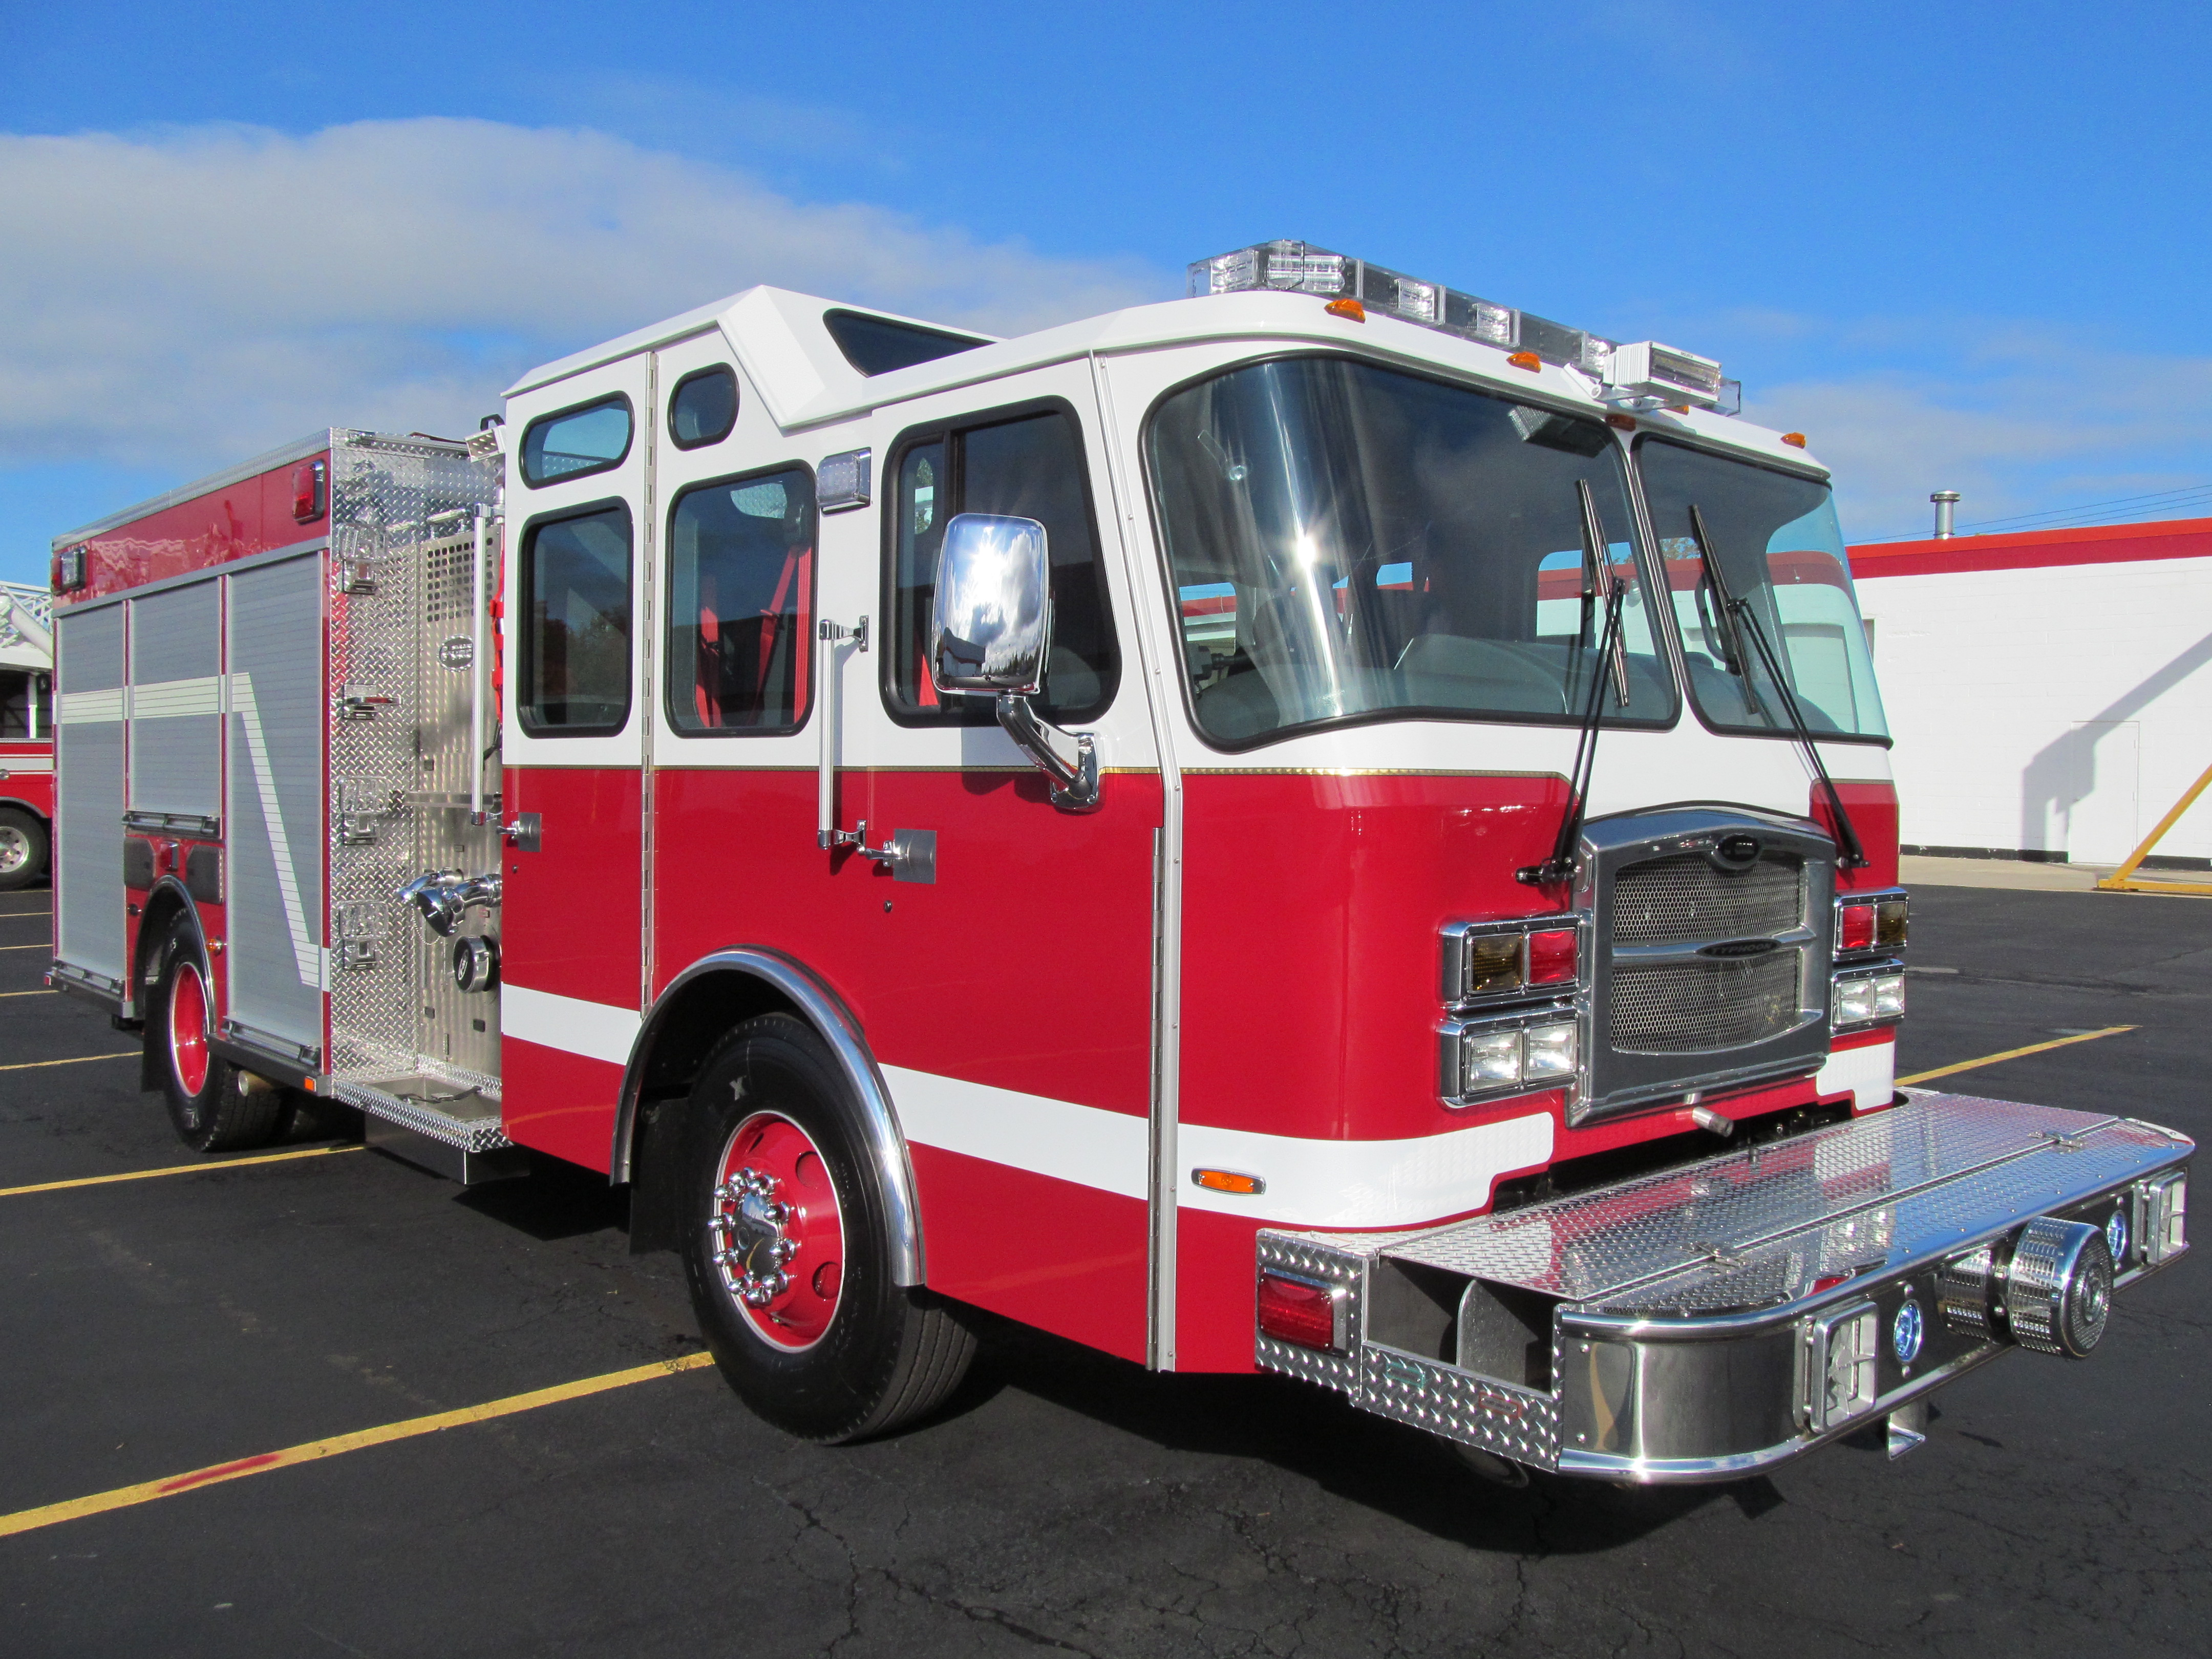 North Amherst Fire Co. - Stainless Steel Side-Mount Pumper